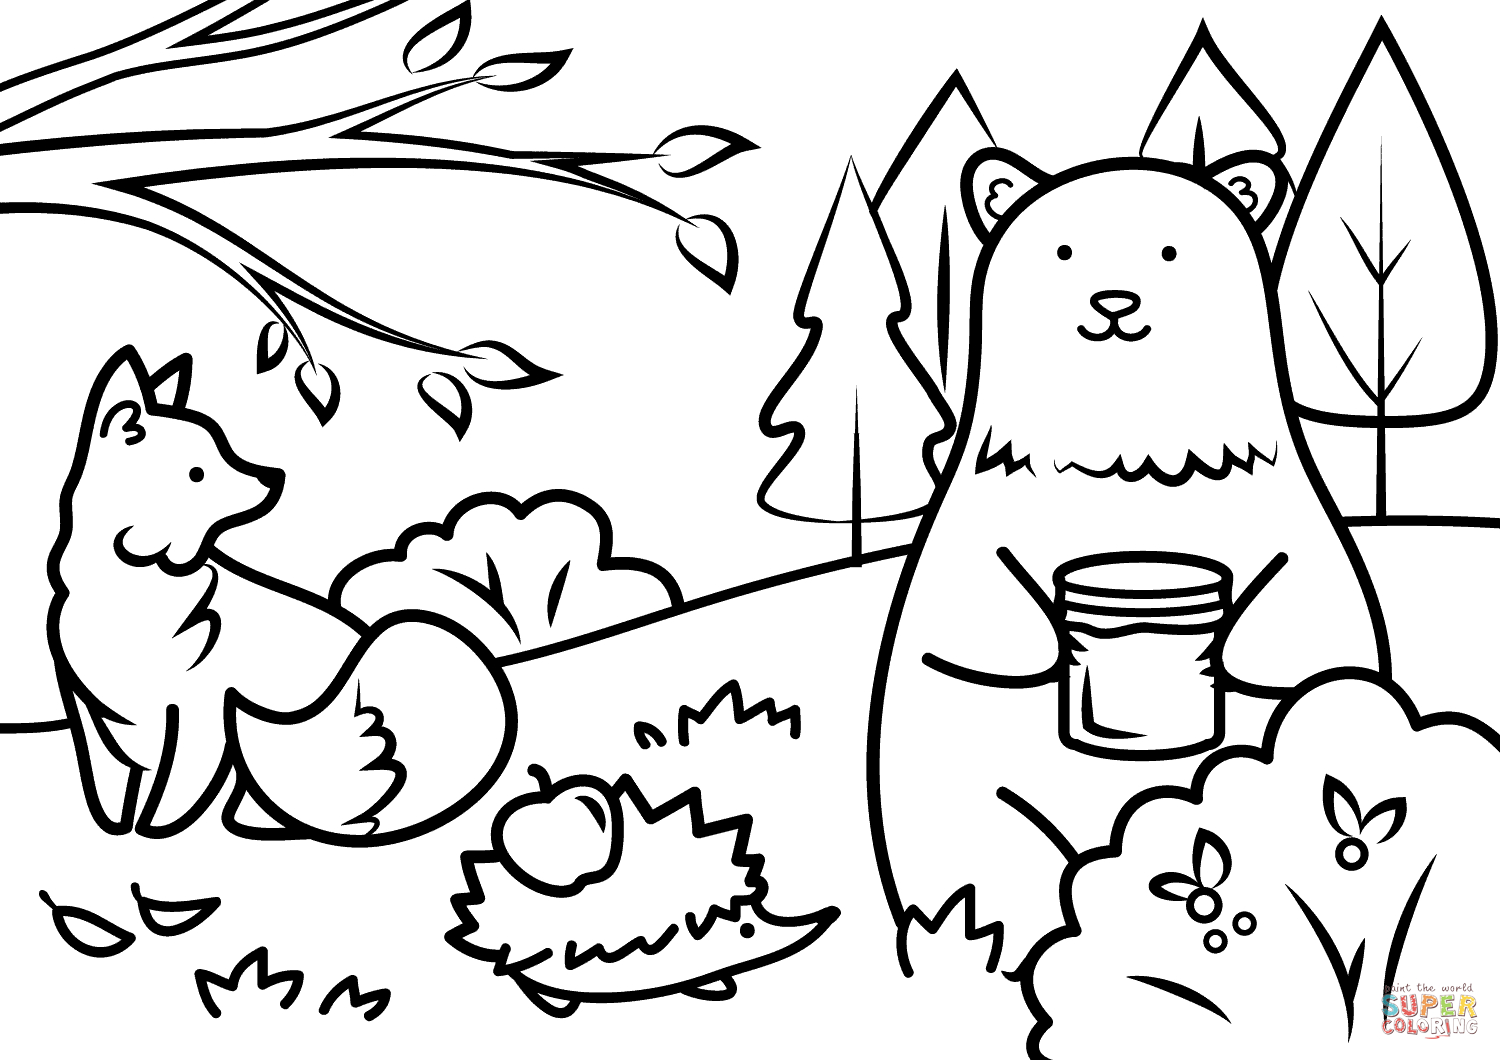 Autumn Animals Coloring Page | Free Printable Coloring Pages - Free Coloring Pages Animals Printable